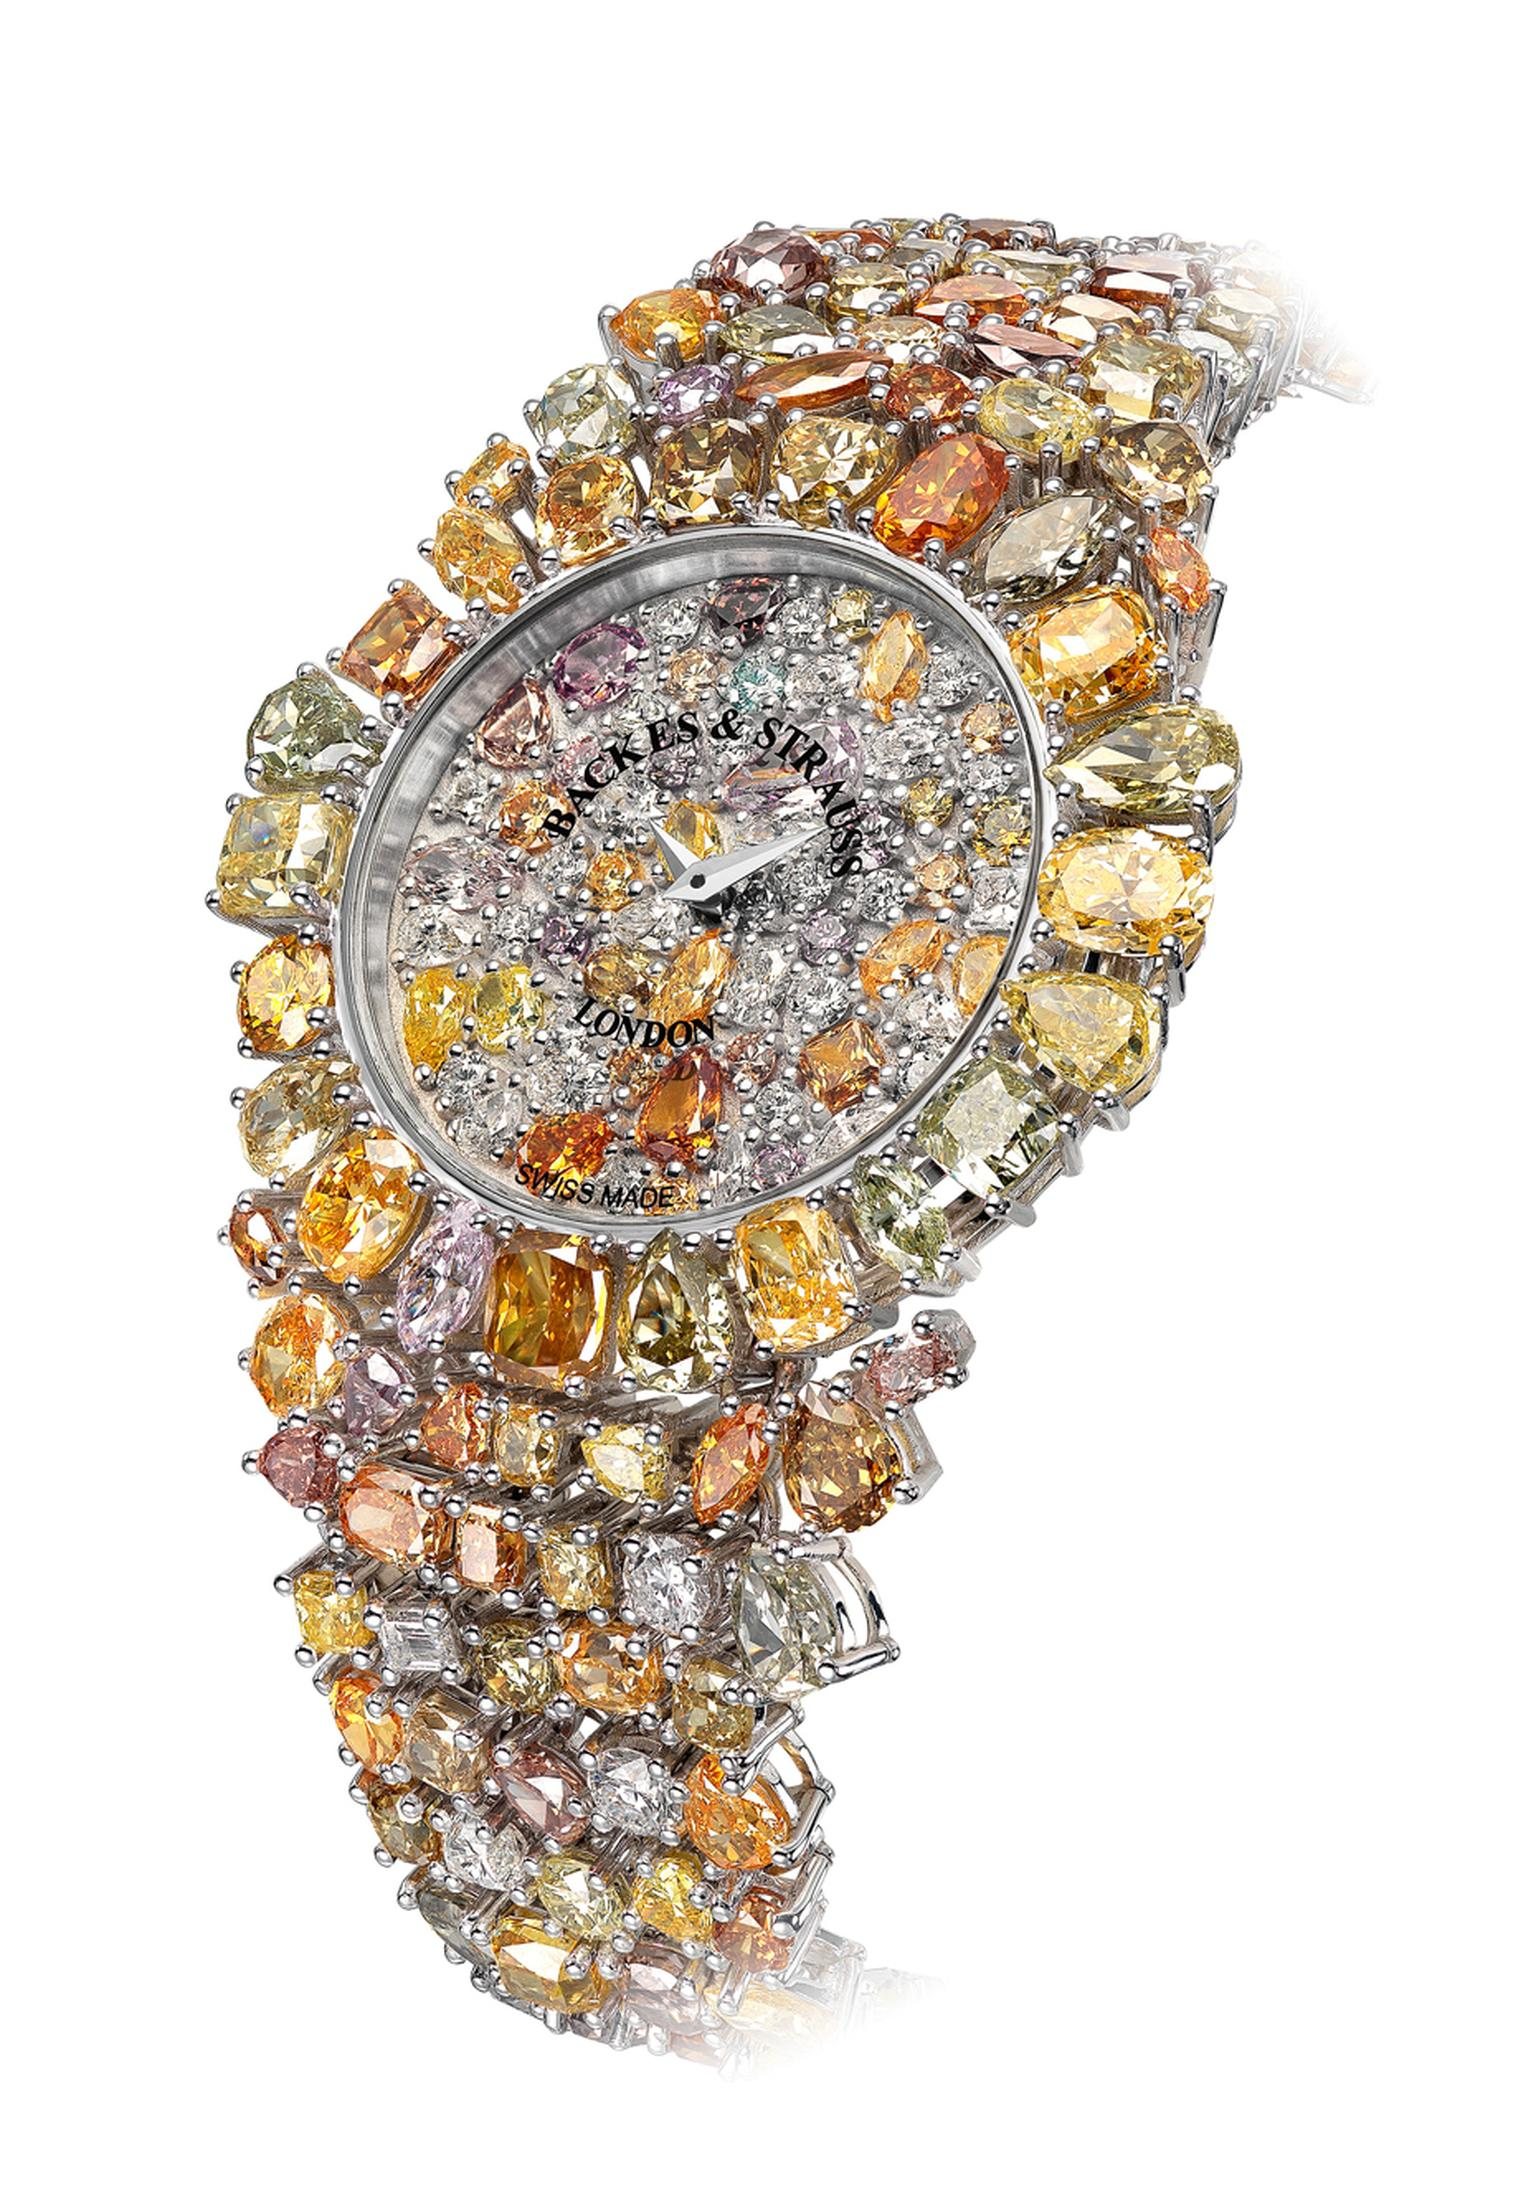 Backes & Strauss' spectacular Piccadilly Princess Royal Colours watch is entirely covered in 225 diamonds in 66 different hues, all of them of the prized fancy-coloured variety